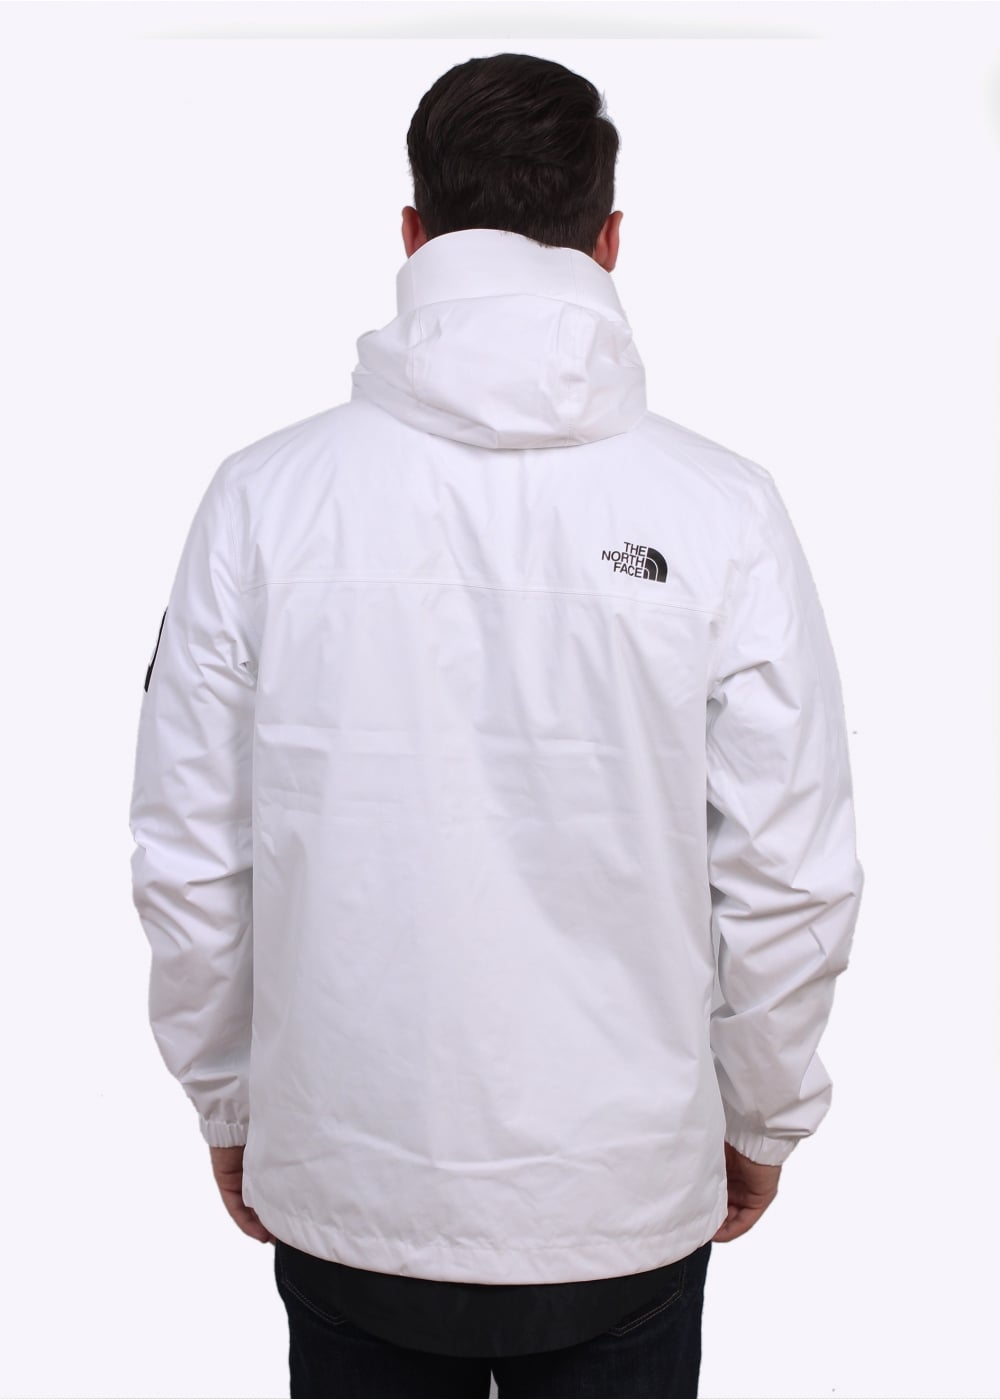 c5a59c614e8 The North Face Mountain Q Jacket - White - Jackets from Triads UK